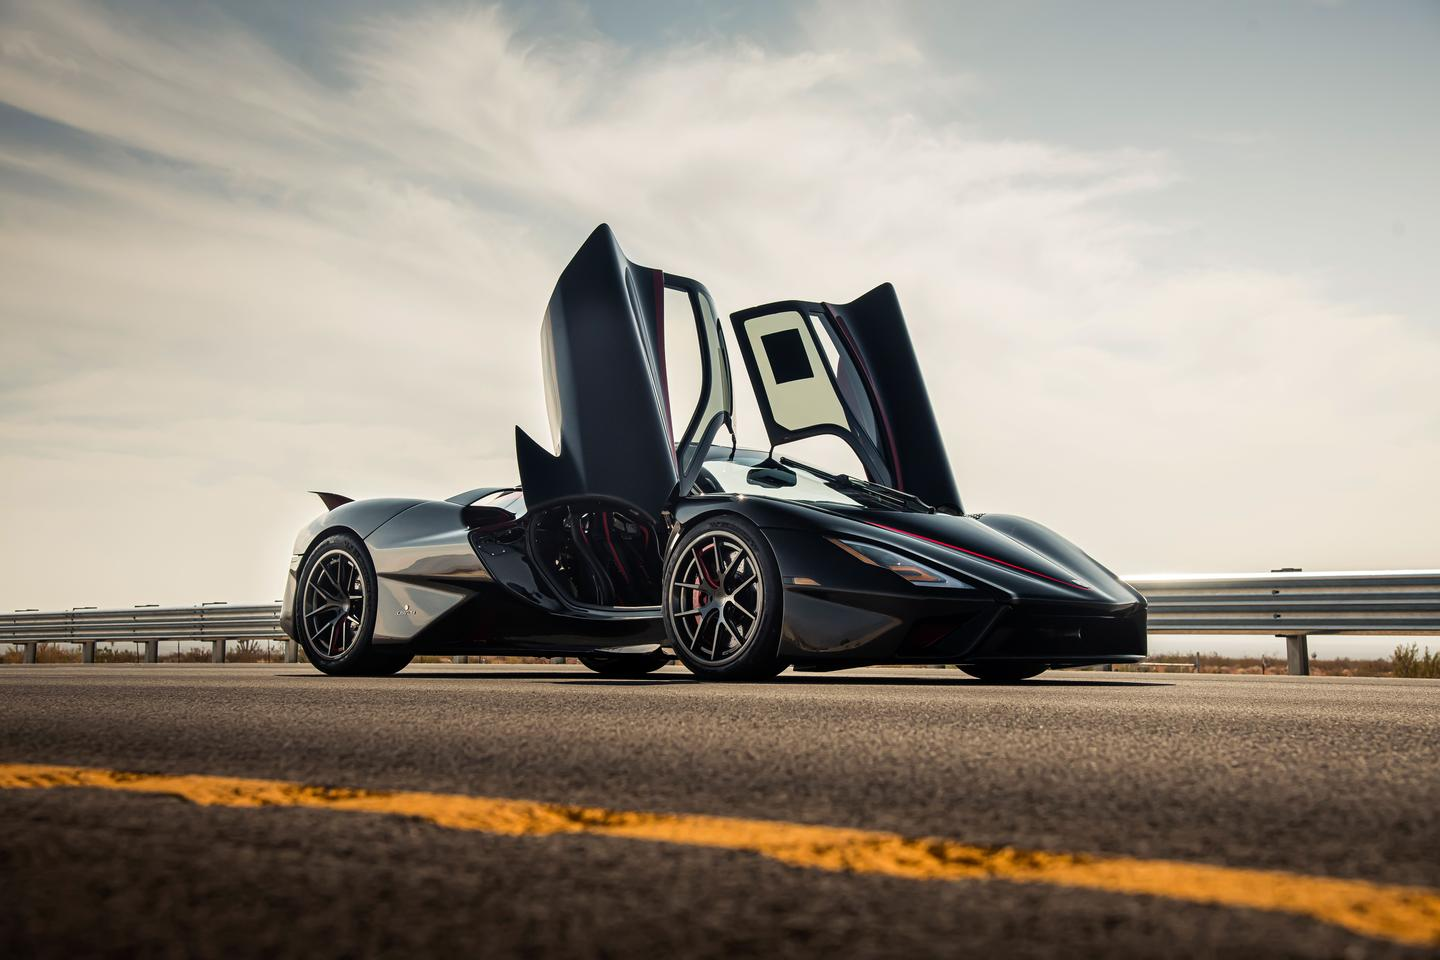 The SSC Tuatara follows in the footsteps of the SSC Ultimate Aero, which set a 256-mph record in 2007